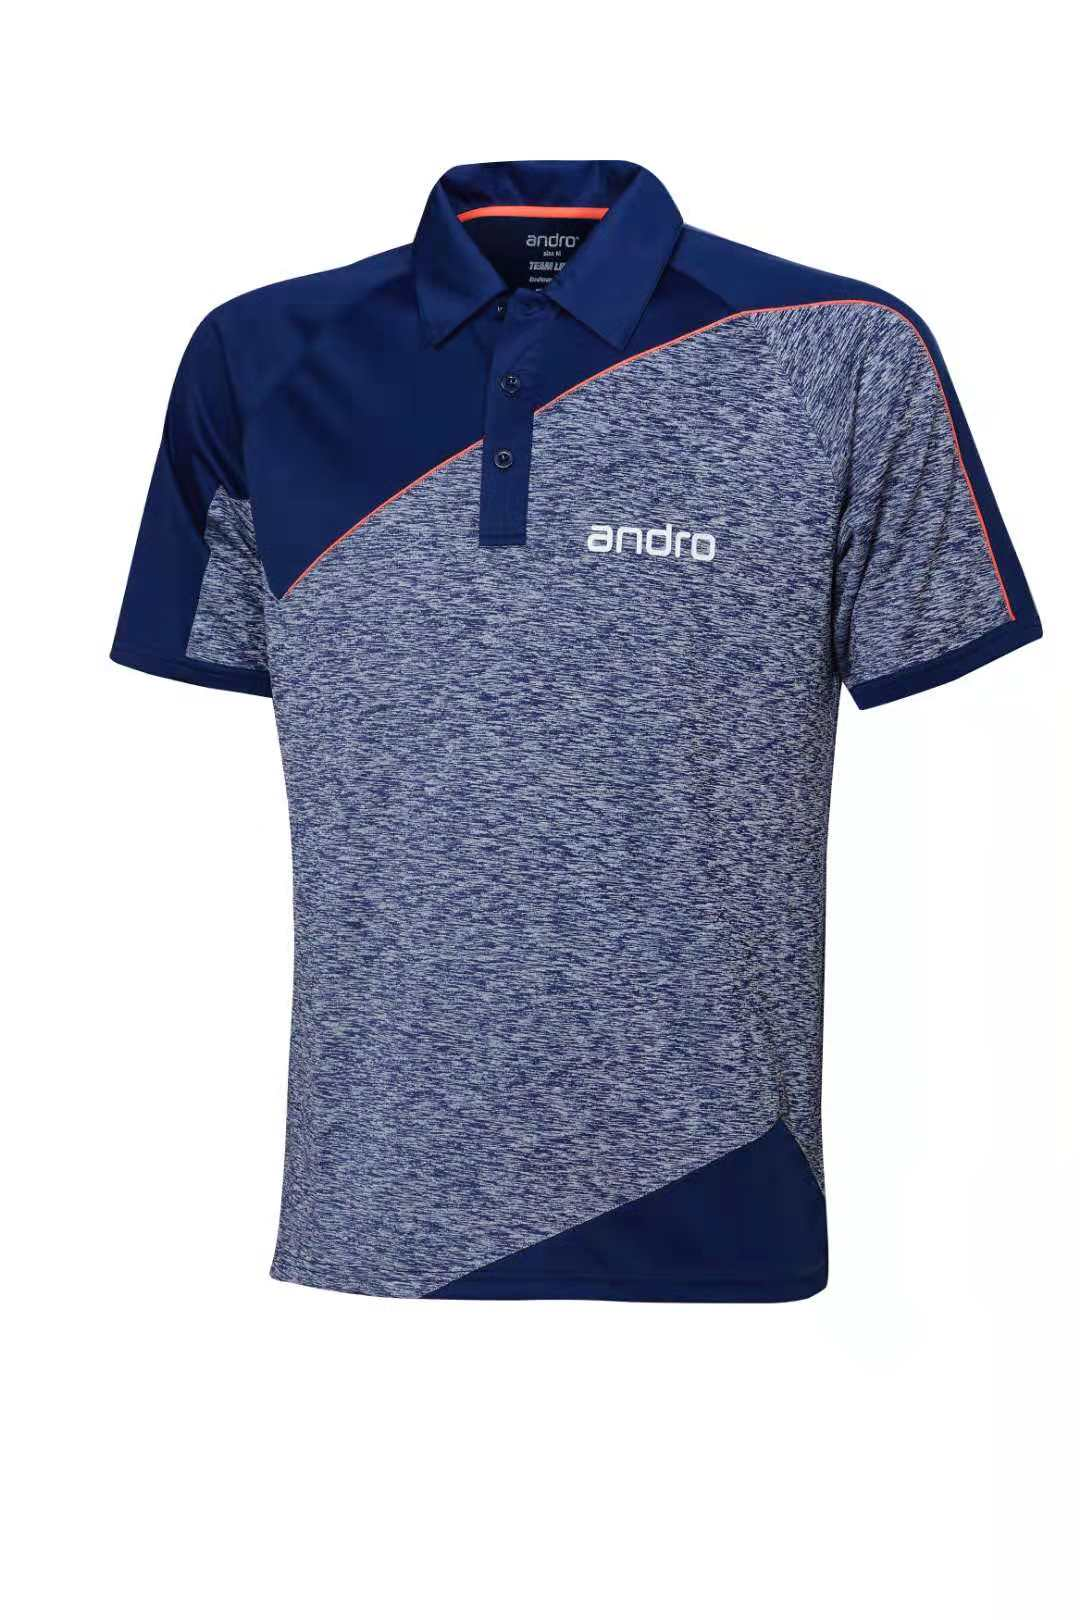 US $31.09 10% OFF|Andro Table Tennis Clothes For Men And Women Clothing T shirt Short Sleeved Shirt Ping Pong Jersey Sport Jerseys in Table Tennis